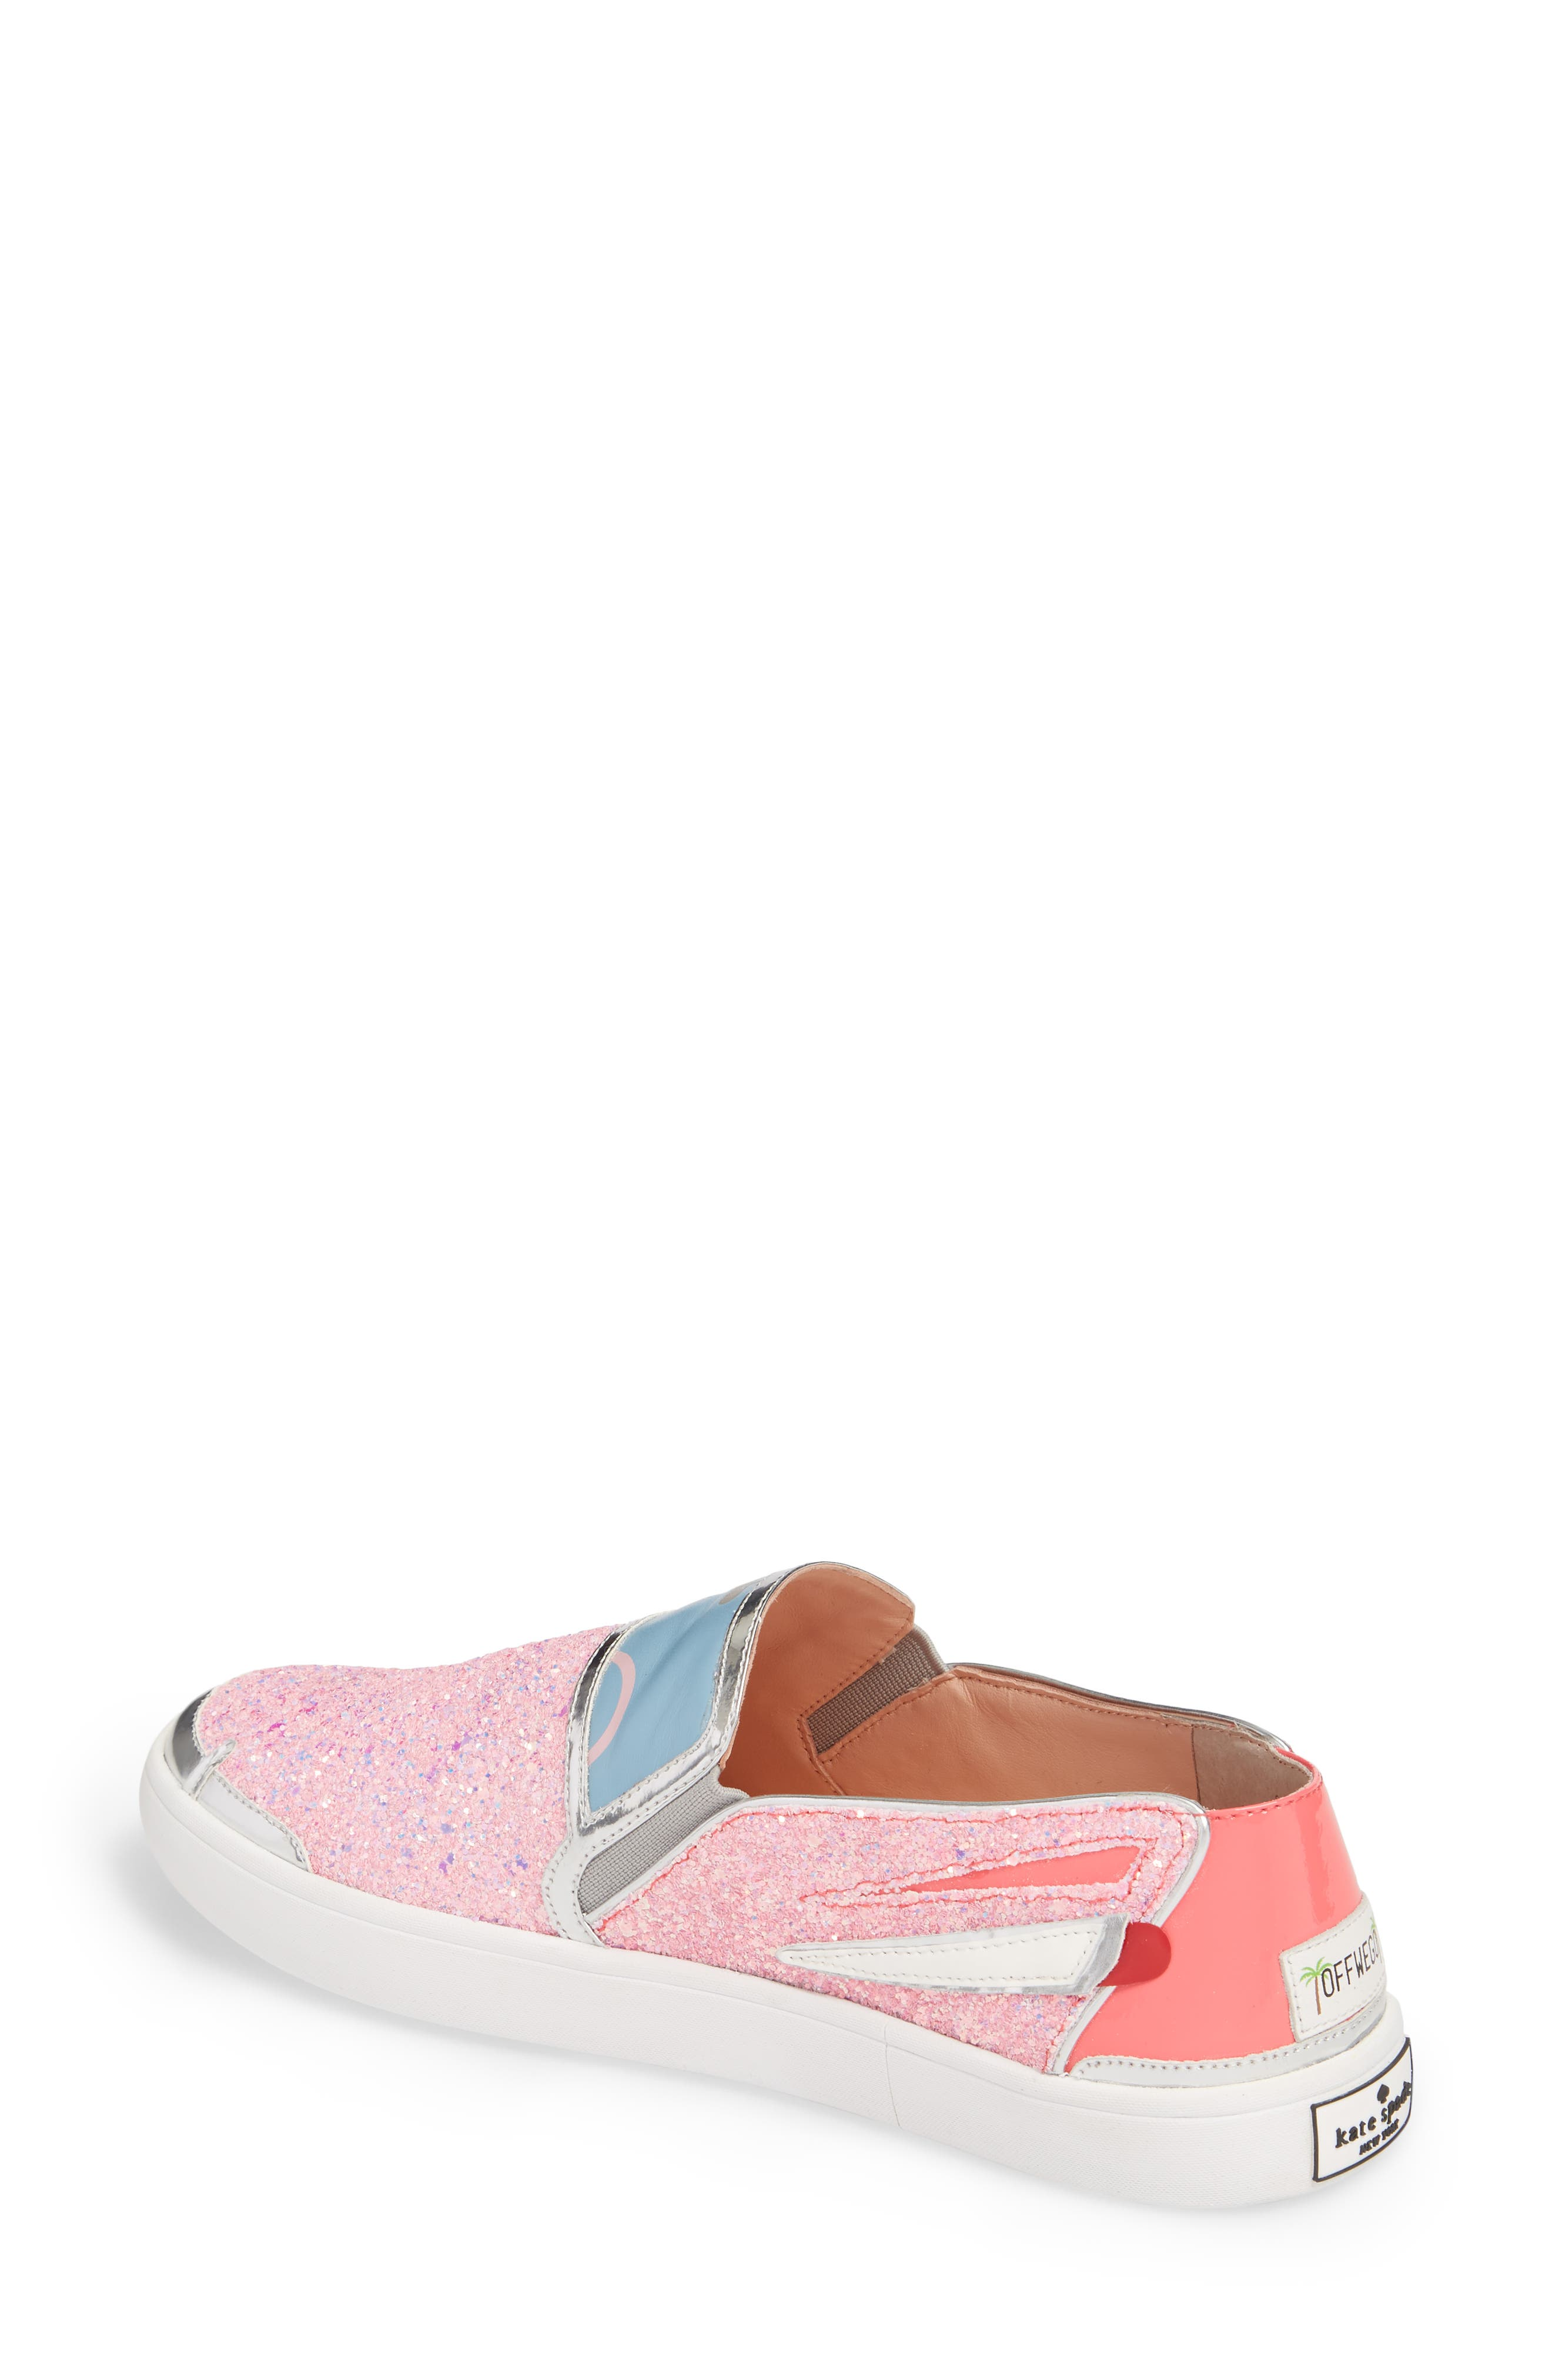 Lotus Slip-On Sneaker,                             Alternate thumbnail 2, color,                             Pink